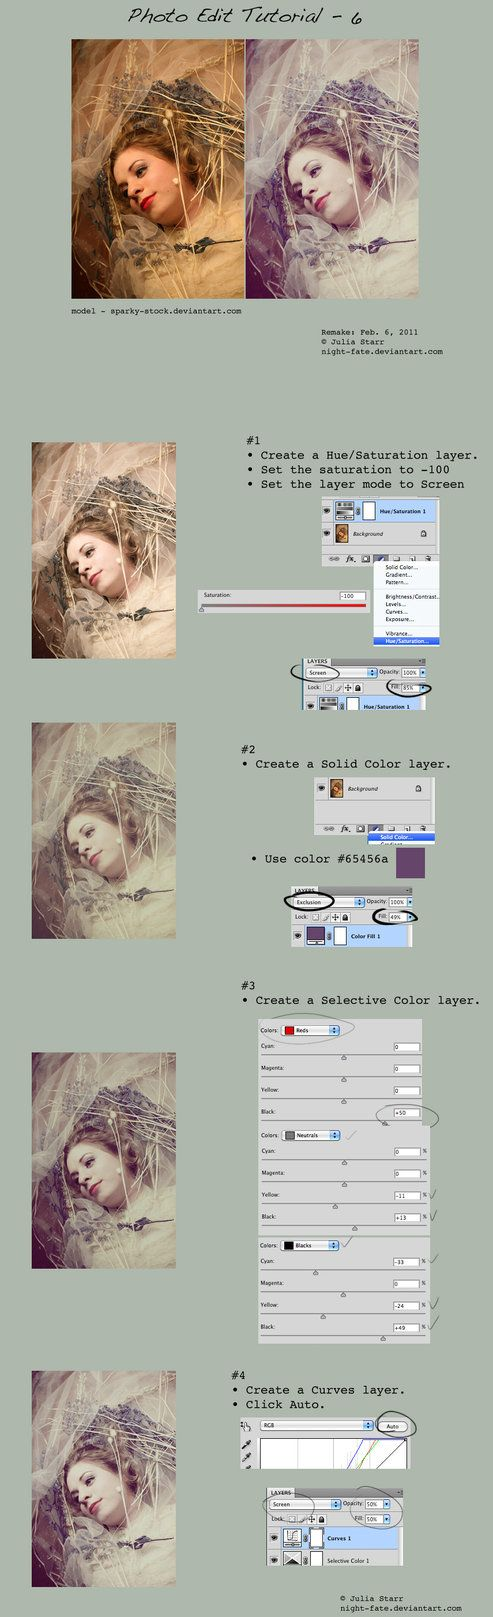 Post Processing In Digital Photography Photoshop And Mac